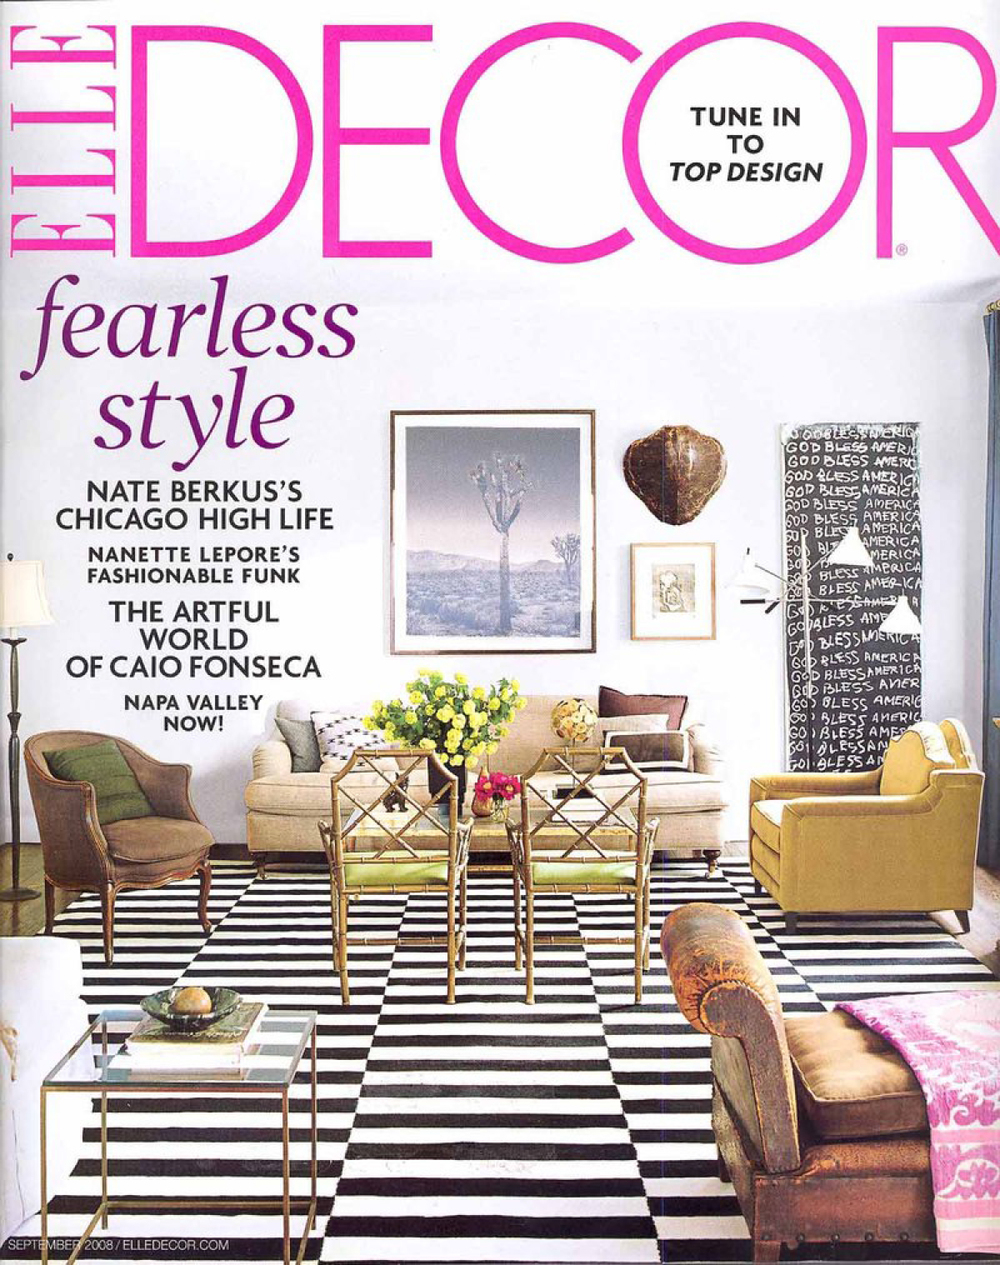 elle_decor_sep2008-1.jpg